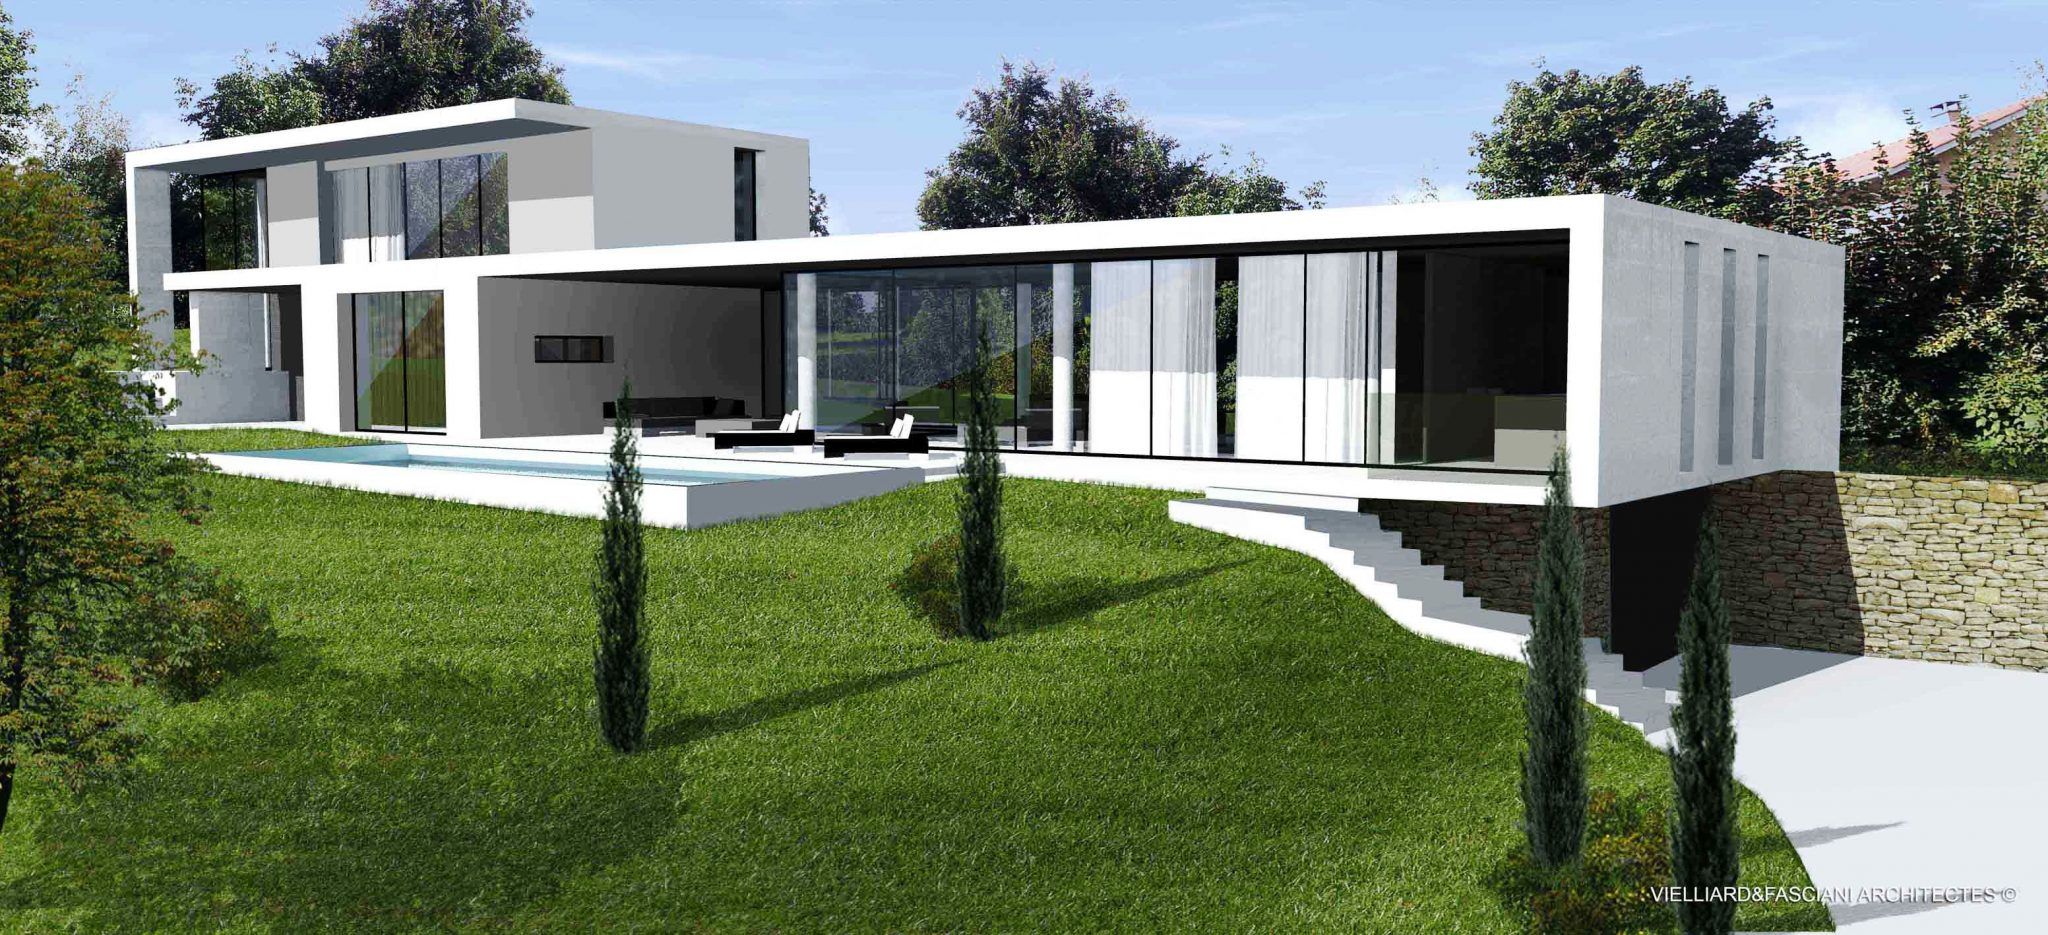 Architecture des villas modernes mc immo for Plan architecte villa moderne